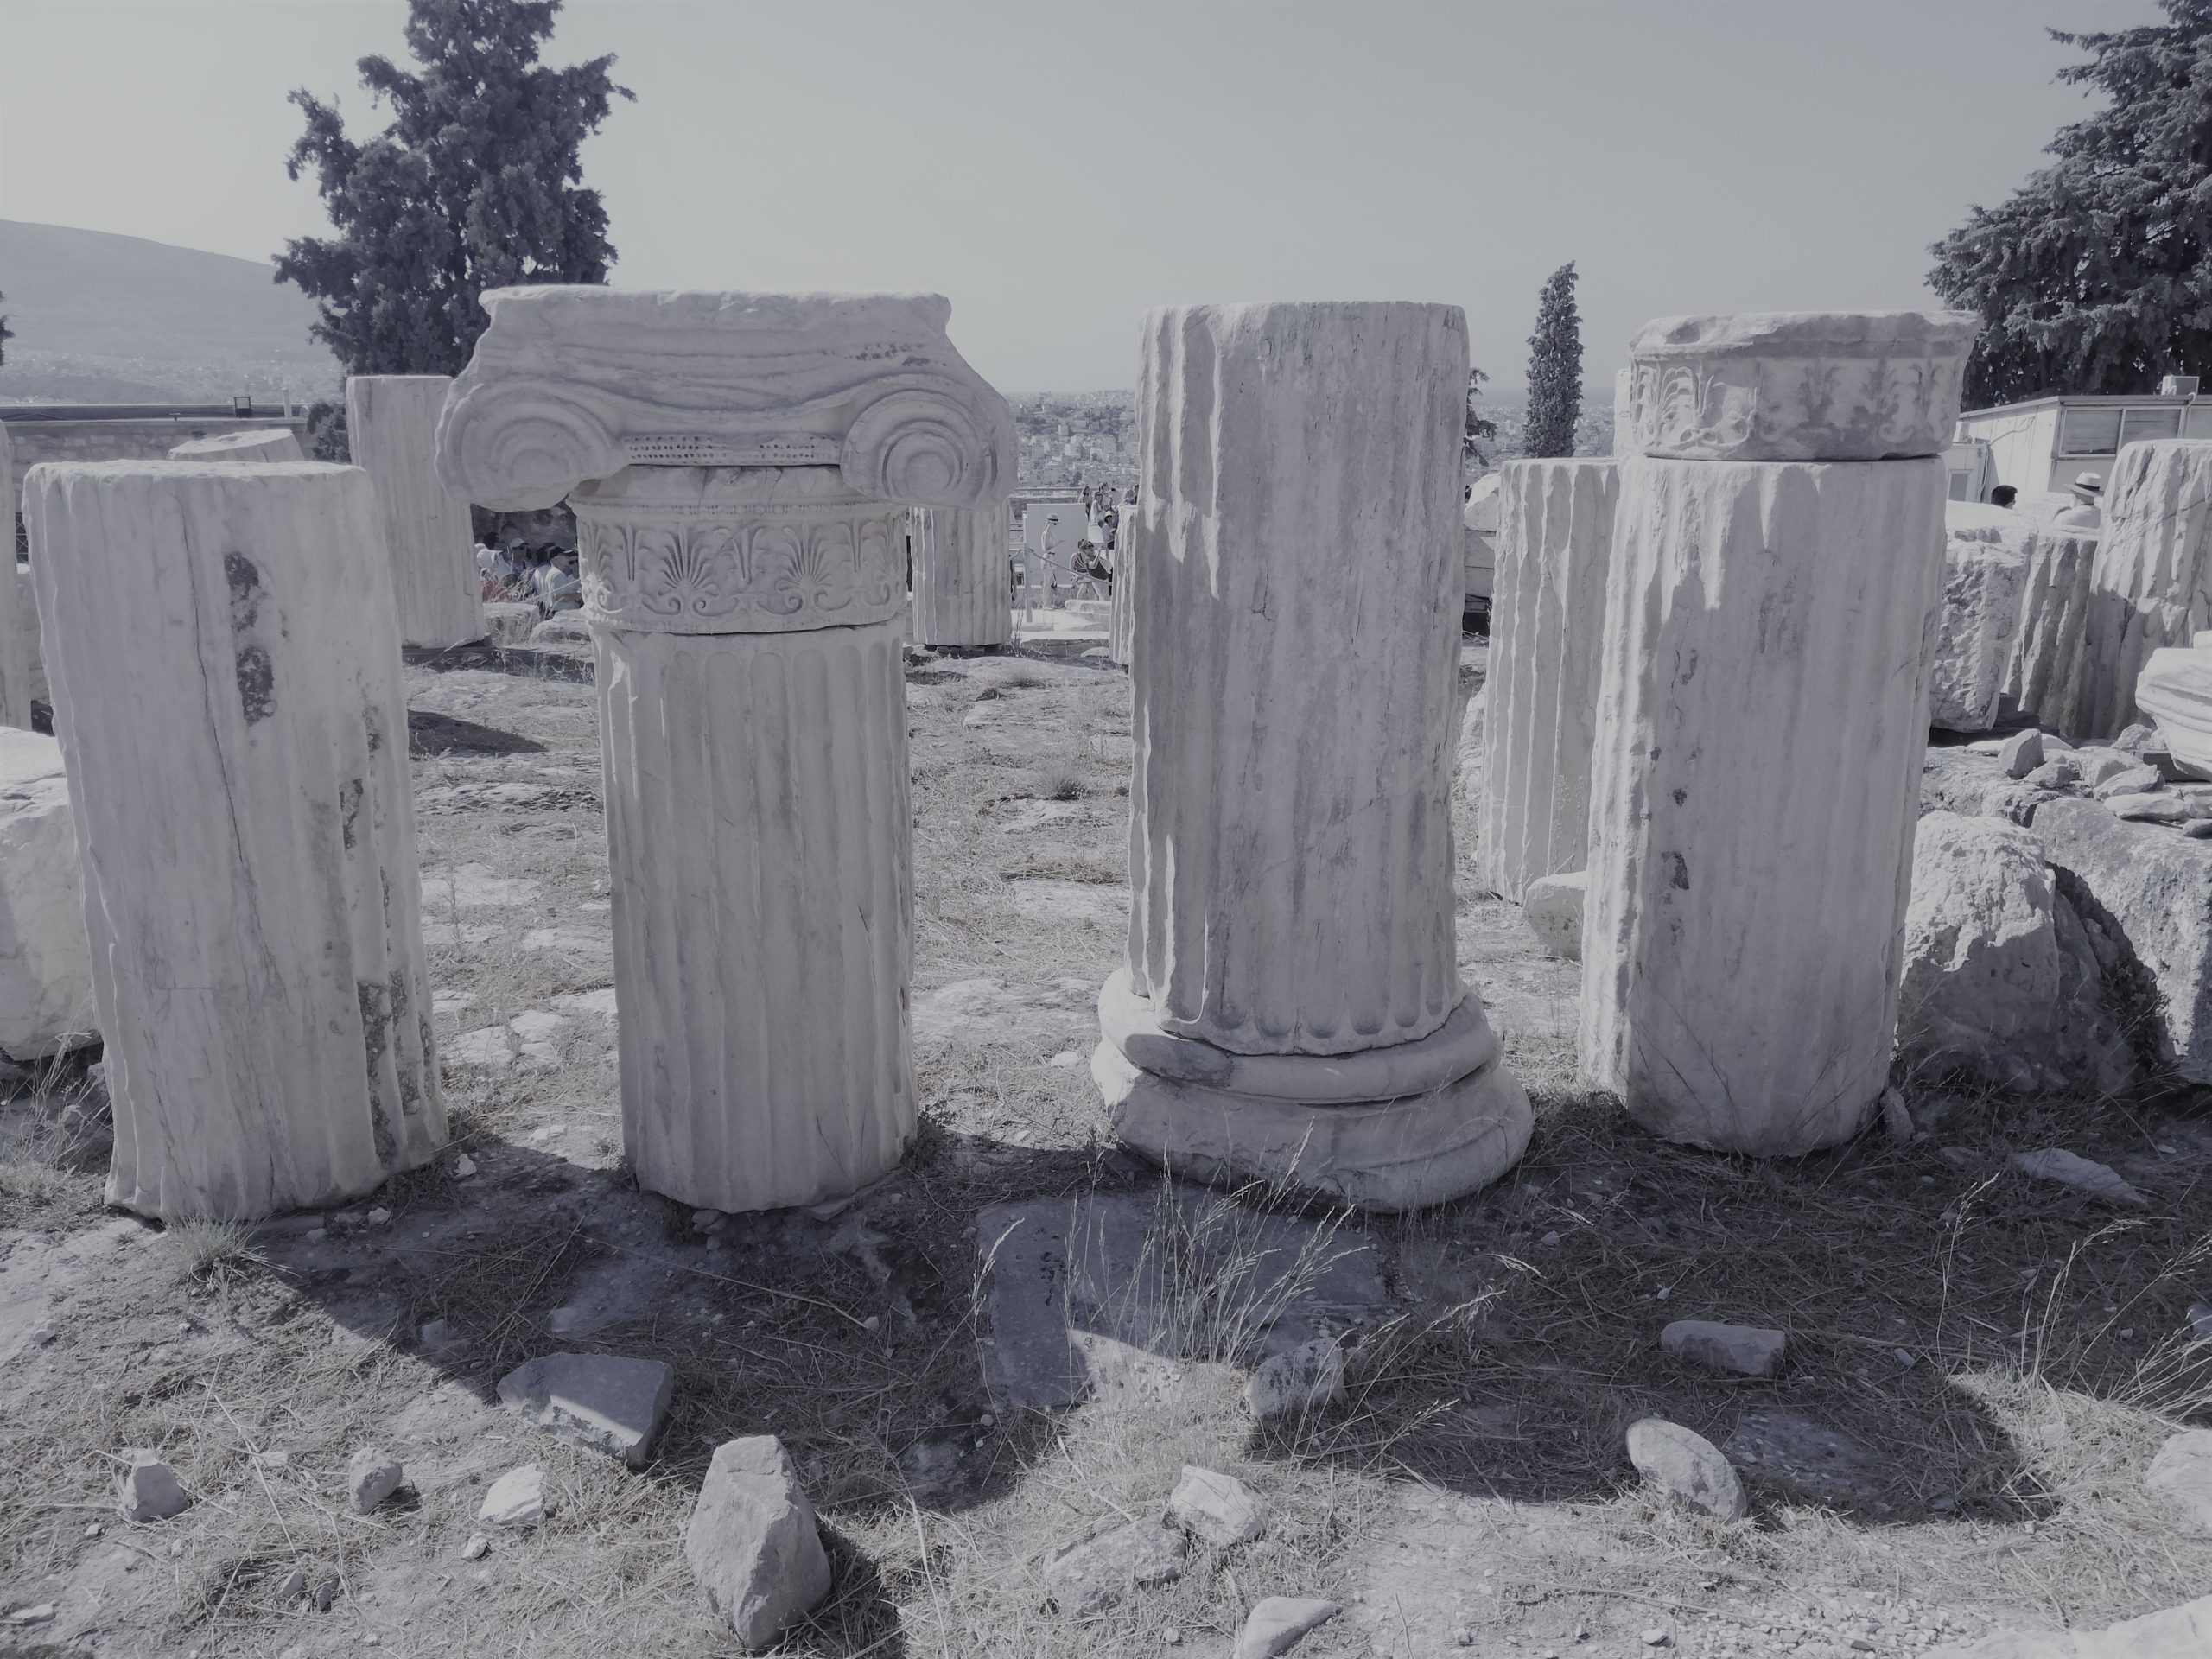 We've been feeling a bit nervous about attempting a historical novel set in Ancient Greece. We want to get things right, and rebuild these ancient ruins in our reader's minds, like the beautiful columns pictured.